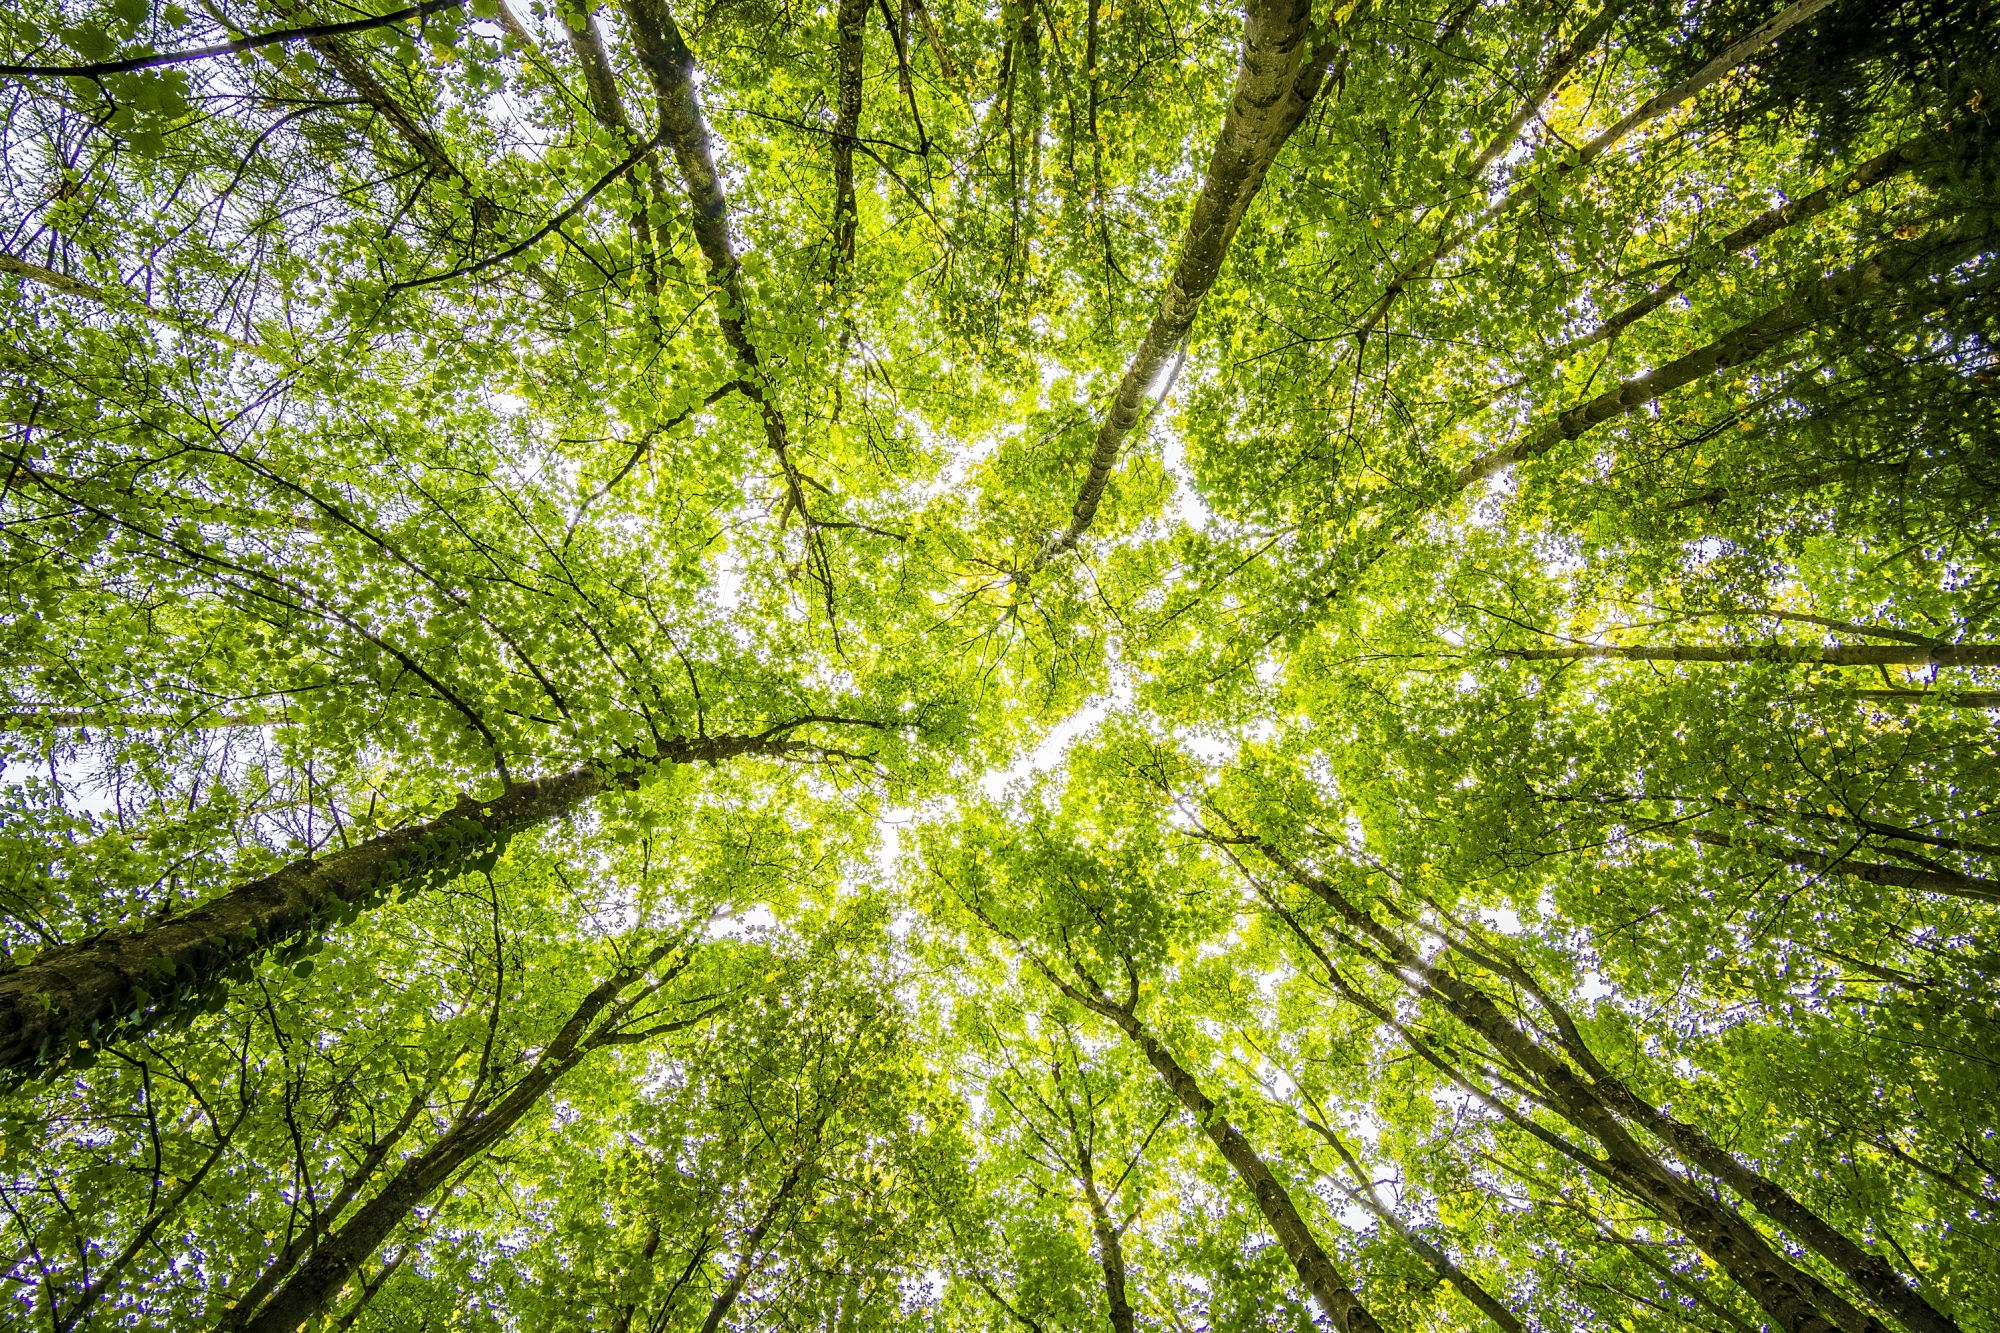 What You Need To Know About Forest Bathing & Its Calming Benefits